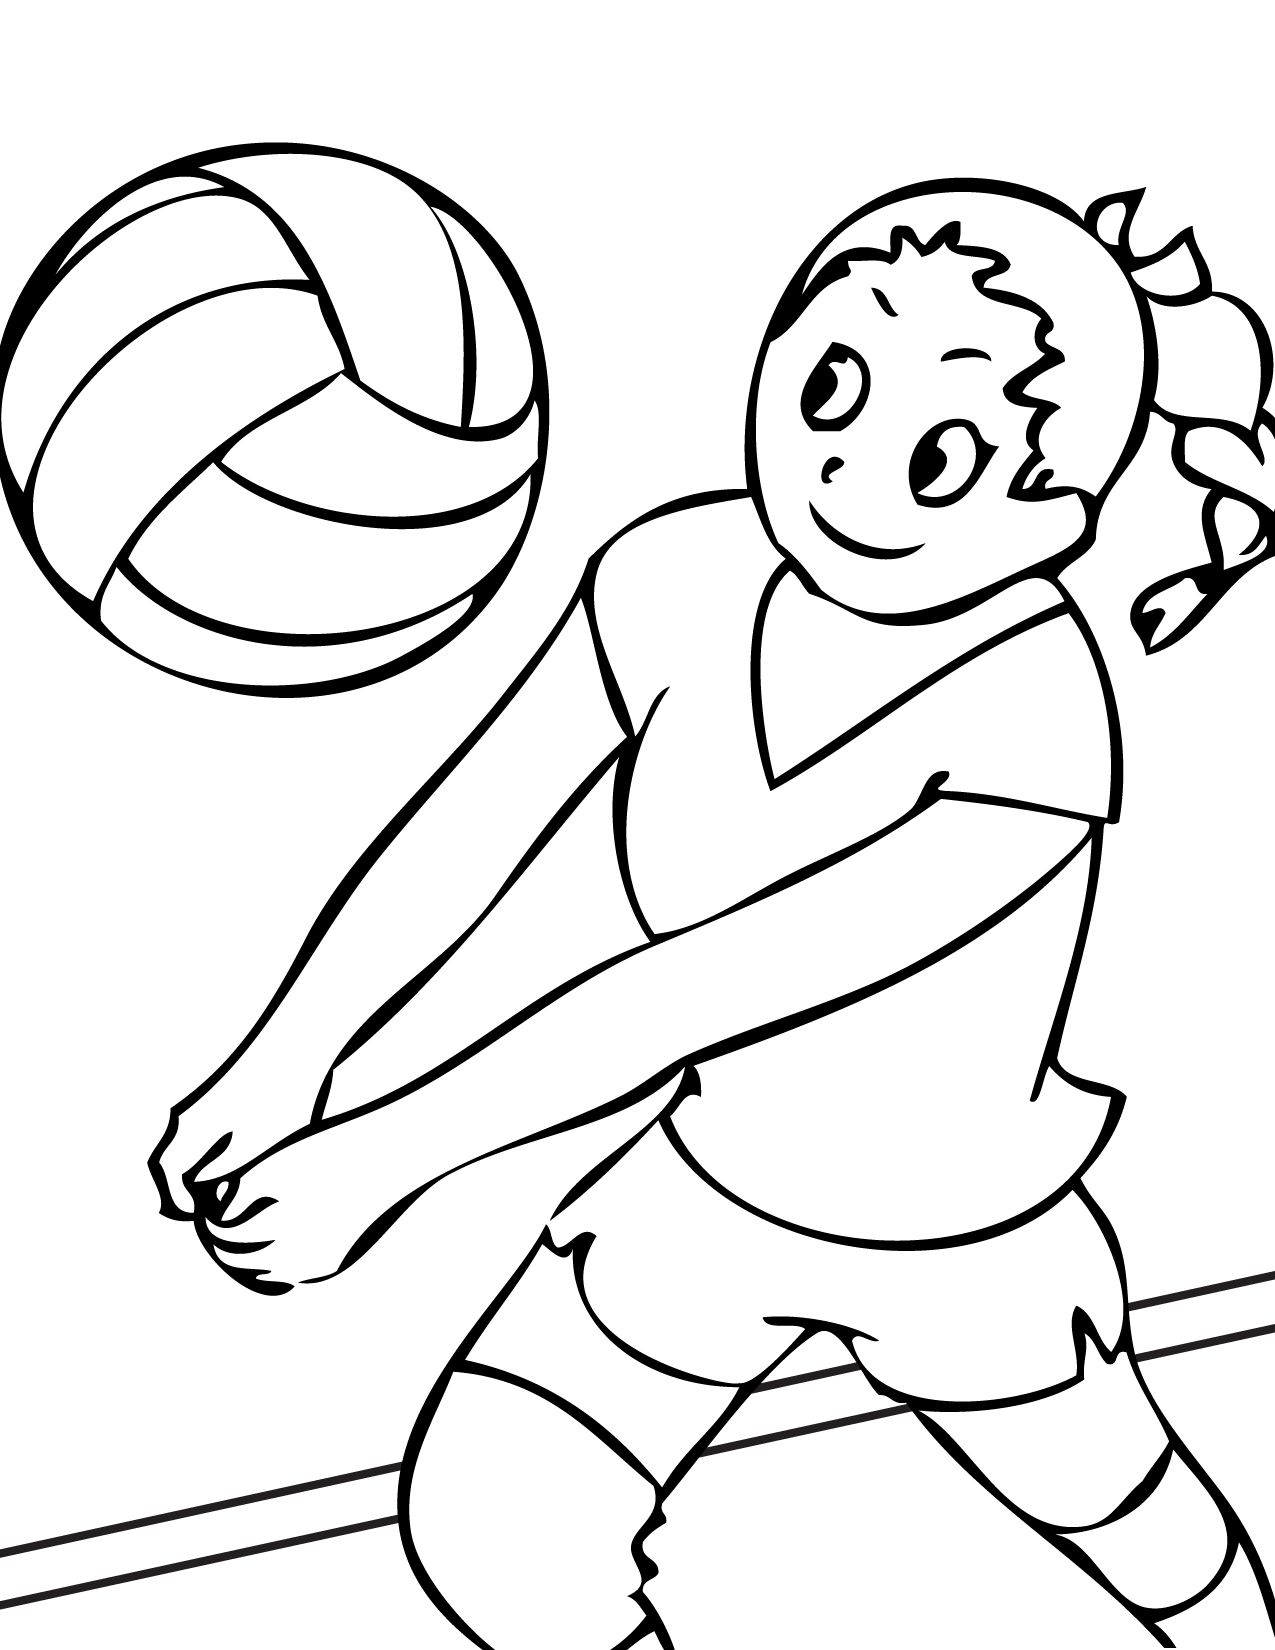 Coloring Pages For Kids Sports Kidsfreecoloring.Net | Free ...